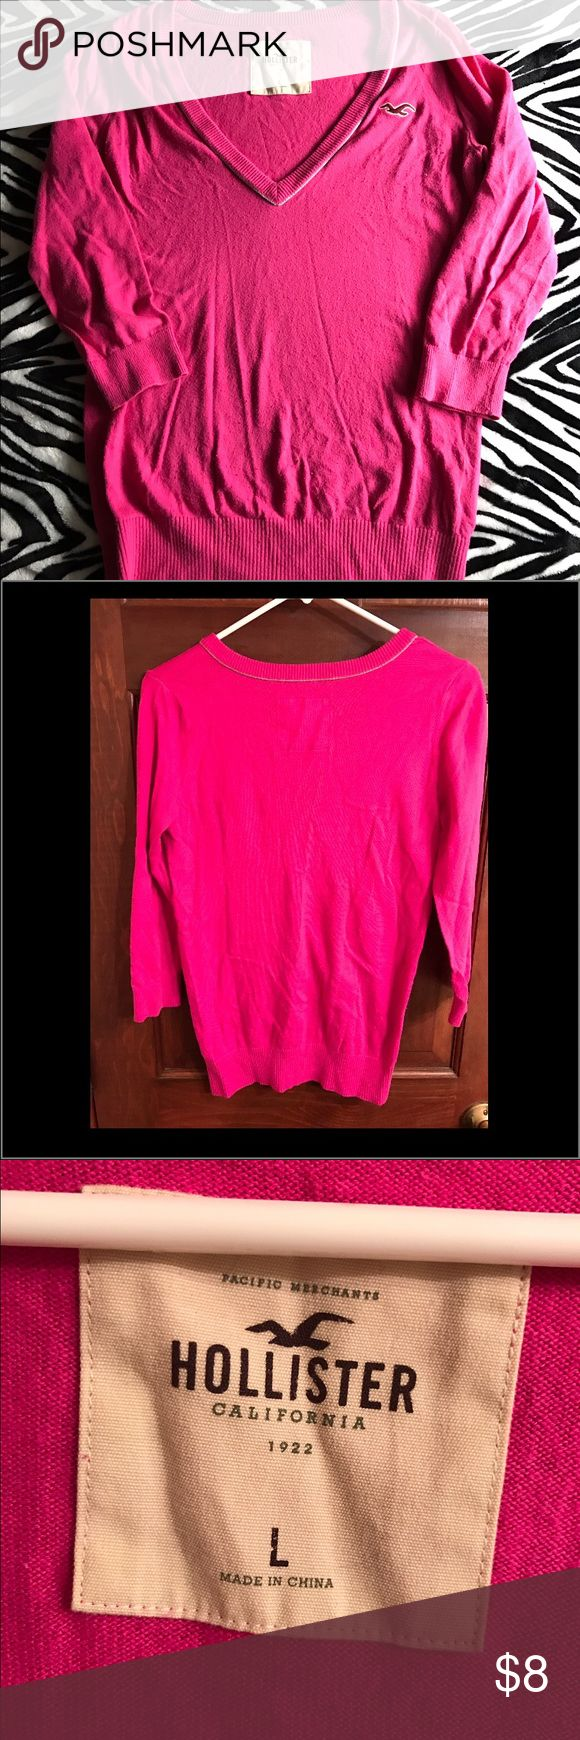 Pink Hollister Cardigan Sweater Pink cardigan sweater with a v-neck. It's warm and not picky. There is piling around the armpit area and toward the bottom of the sweater...most of which can be plucked right off! Hollister Sweaters Cardigans